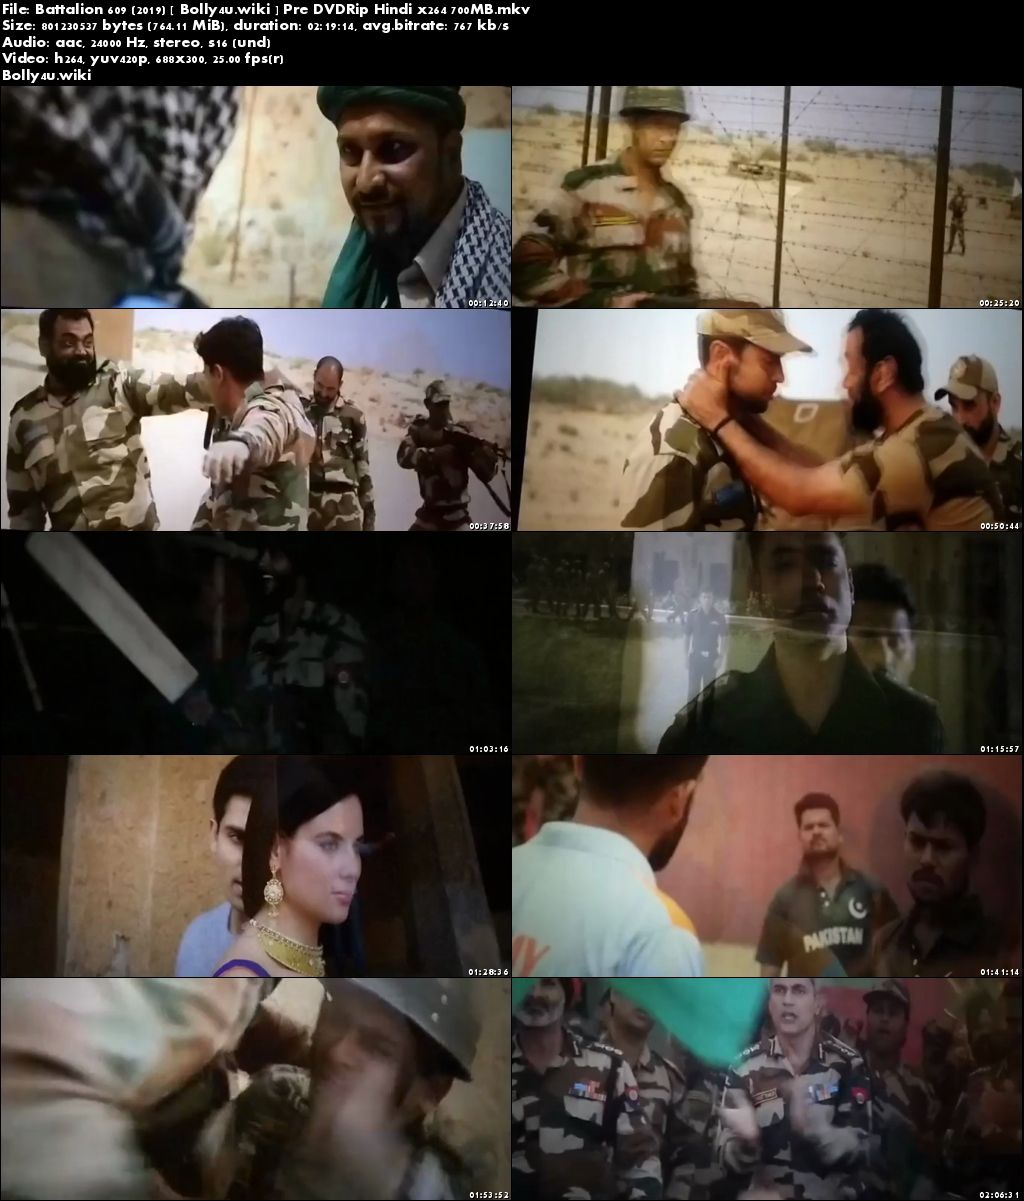 Battalion 609 (2019) Pre DVDRip 700Mb Full Hindi Movie Download x264